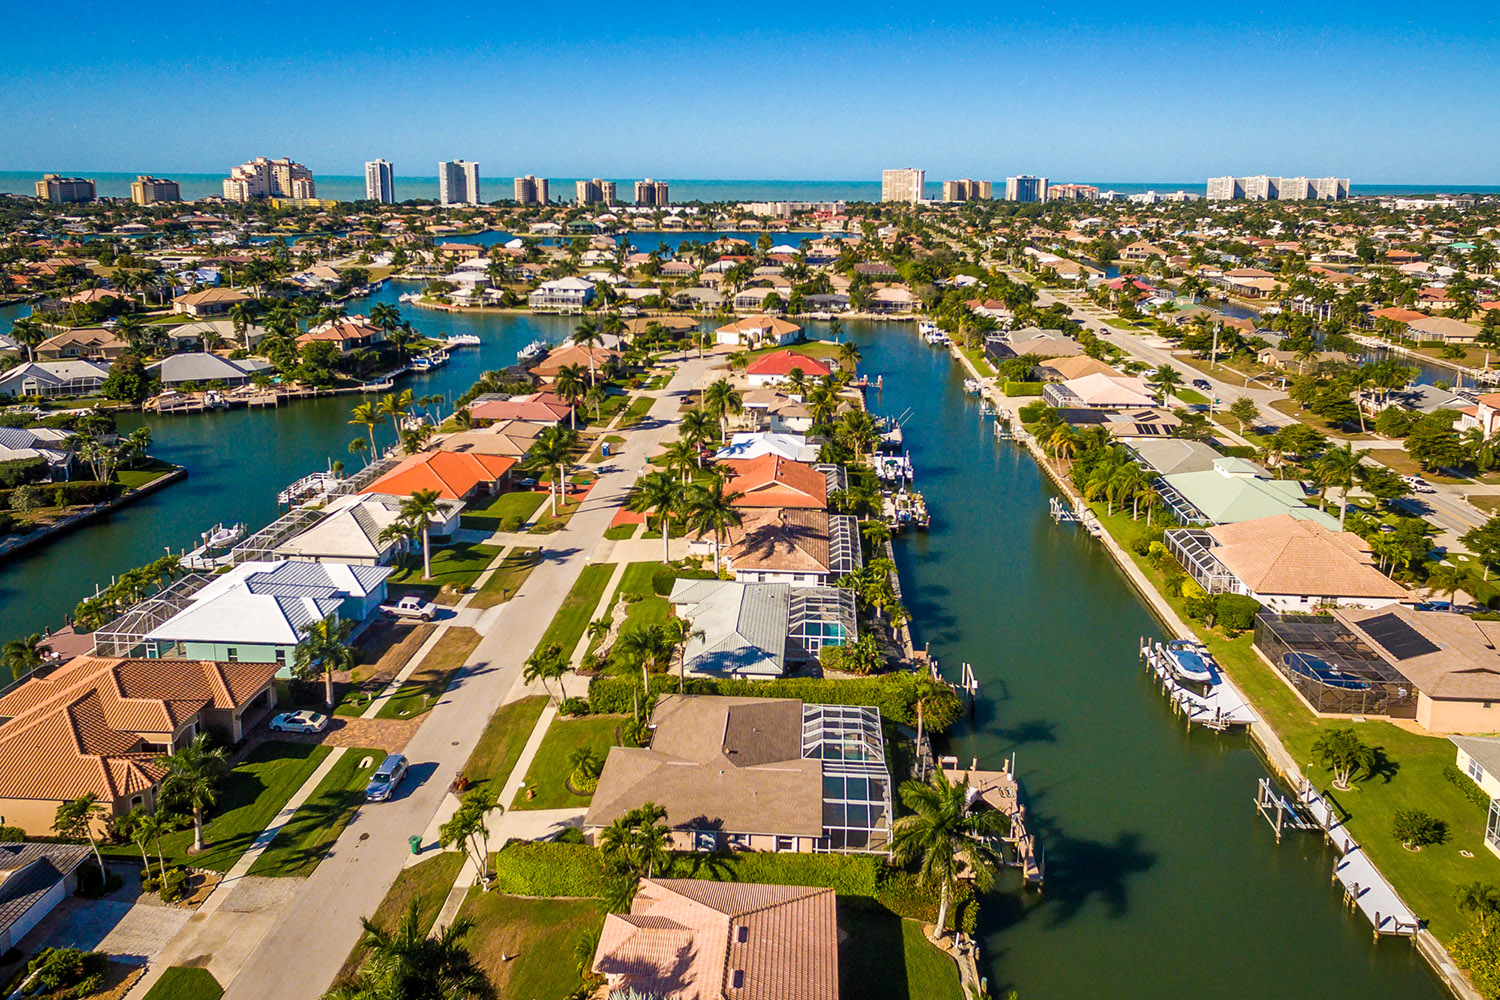 Marco Island Florida Aerial. Doug and Nicki Davis sell realty on marco island fl and specialize in Hideaway Beach and Cape Marco Real Estate.